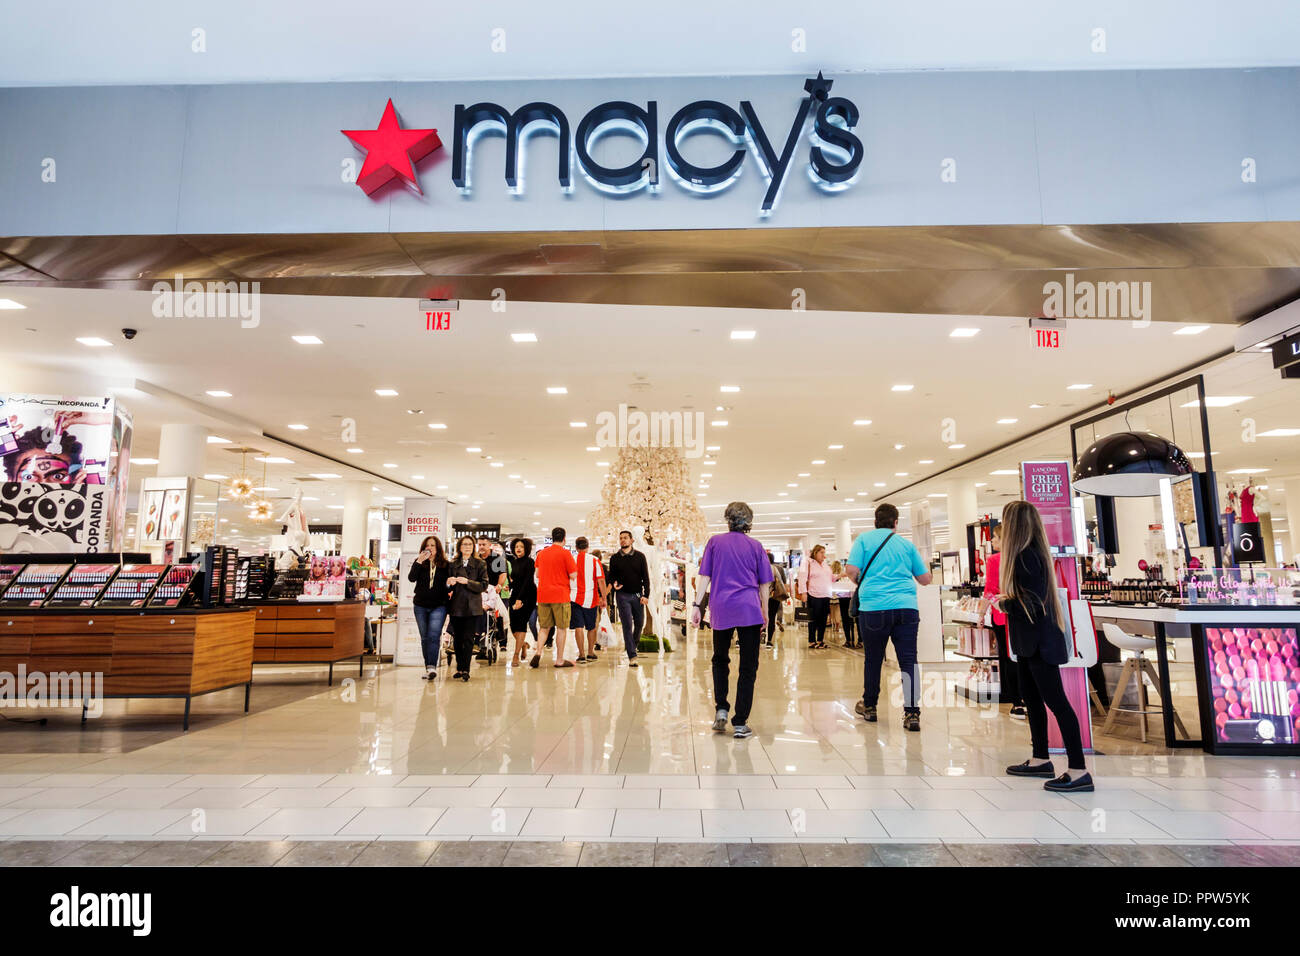 Miami Florida Kendall Dadeland Mall shopping Macy's Department Store inside front entrance - Stock Image